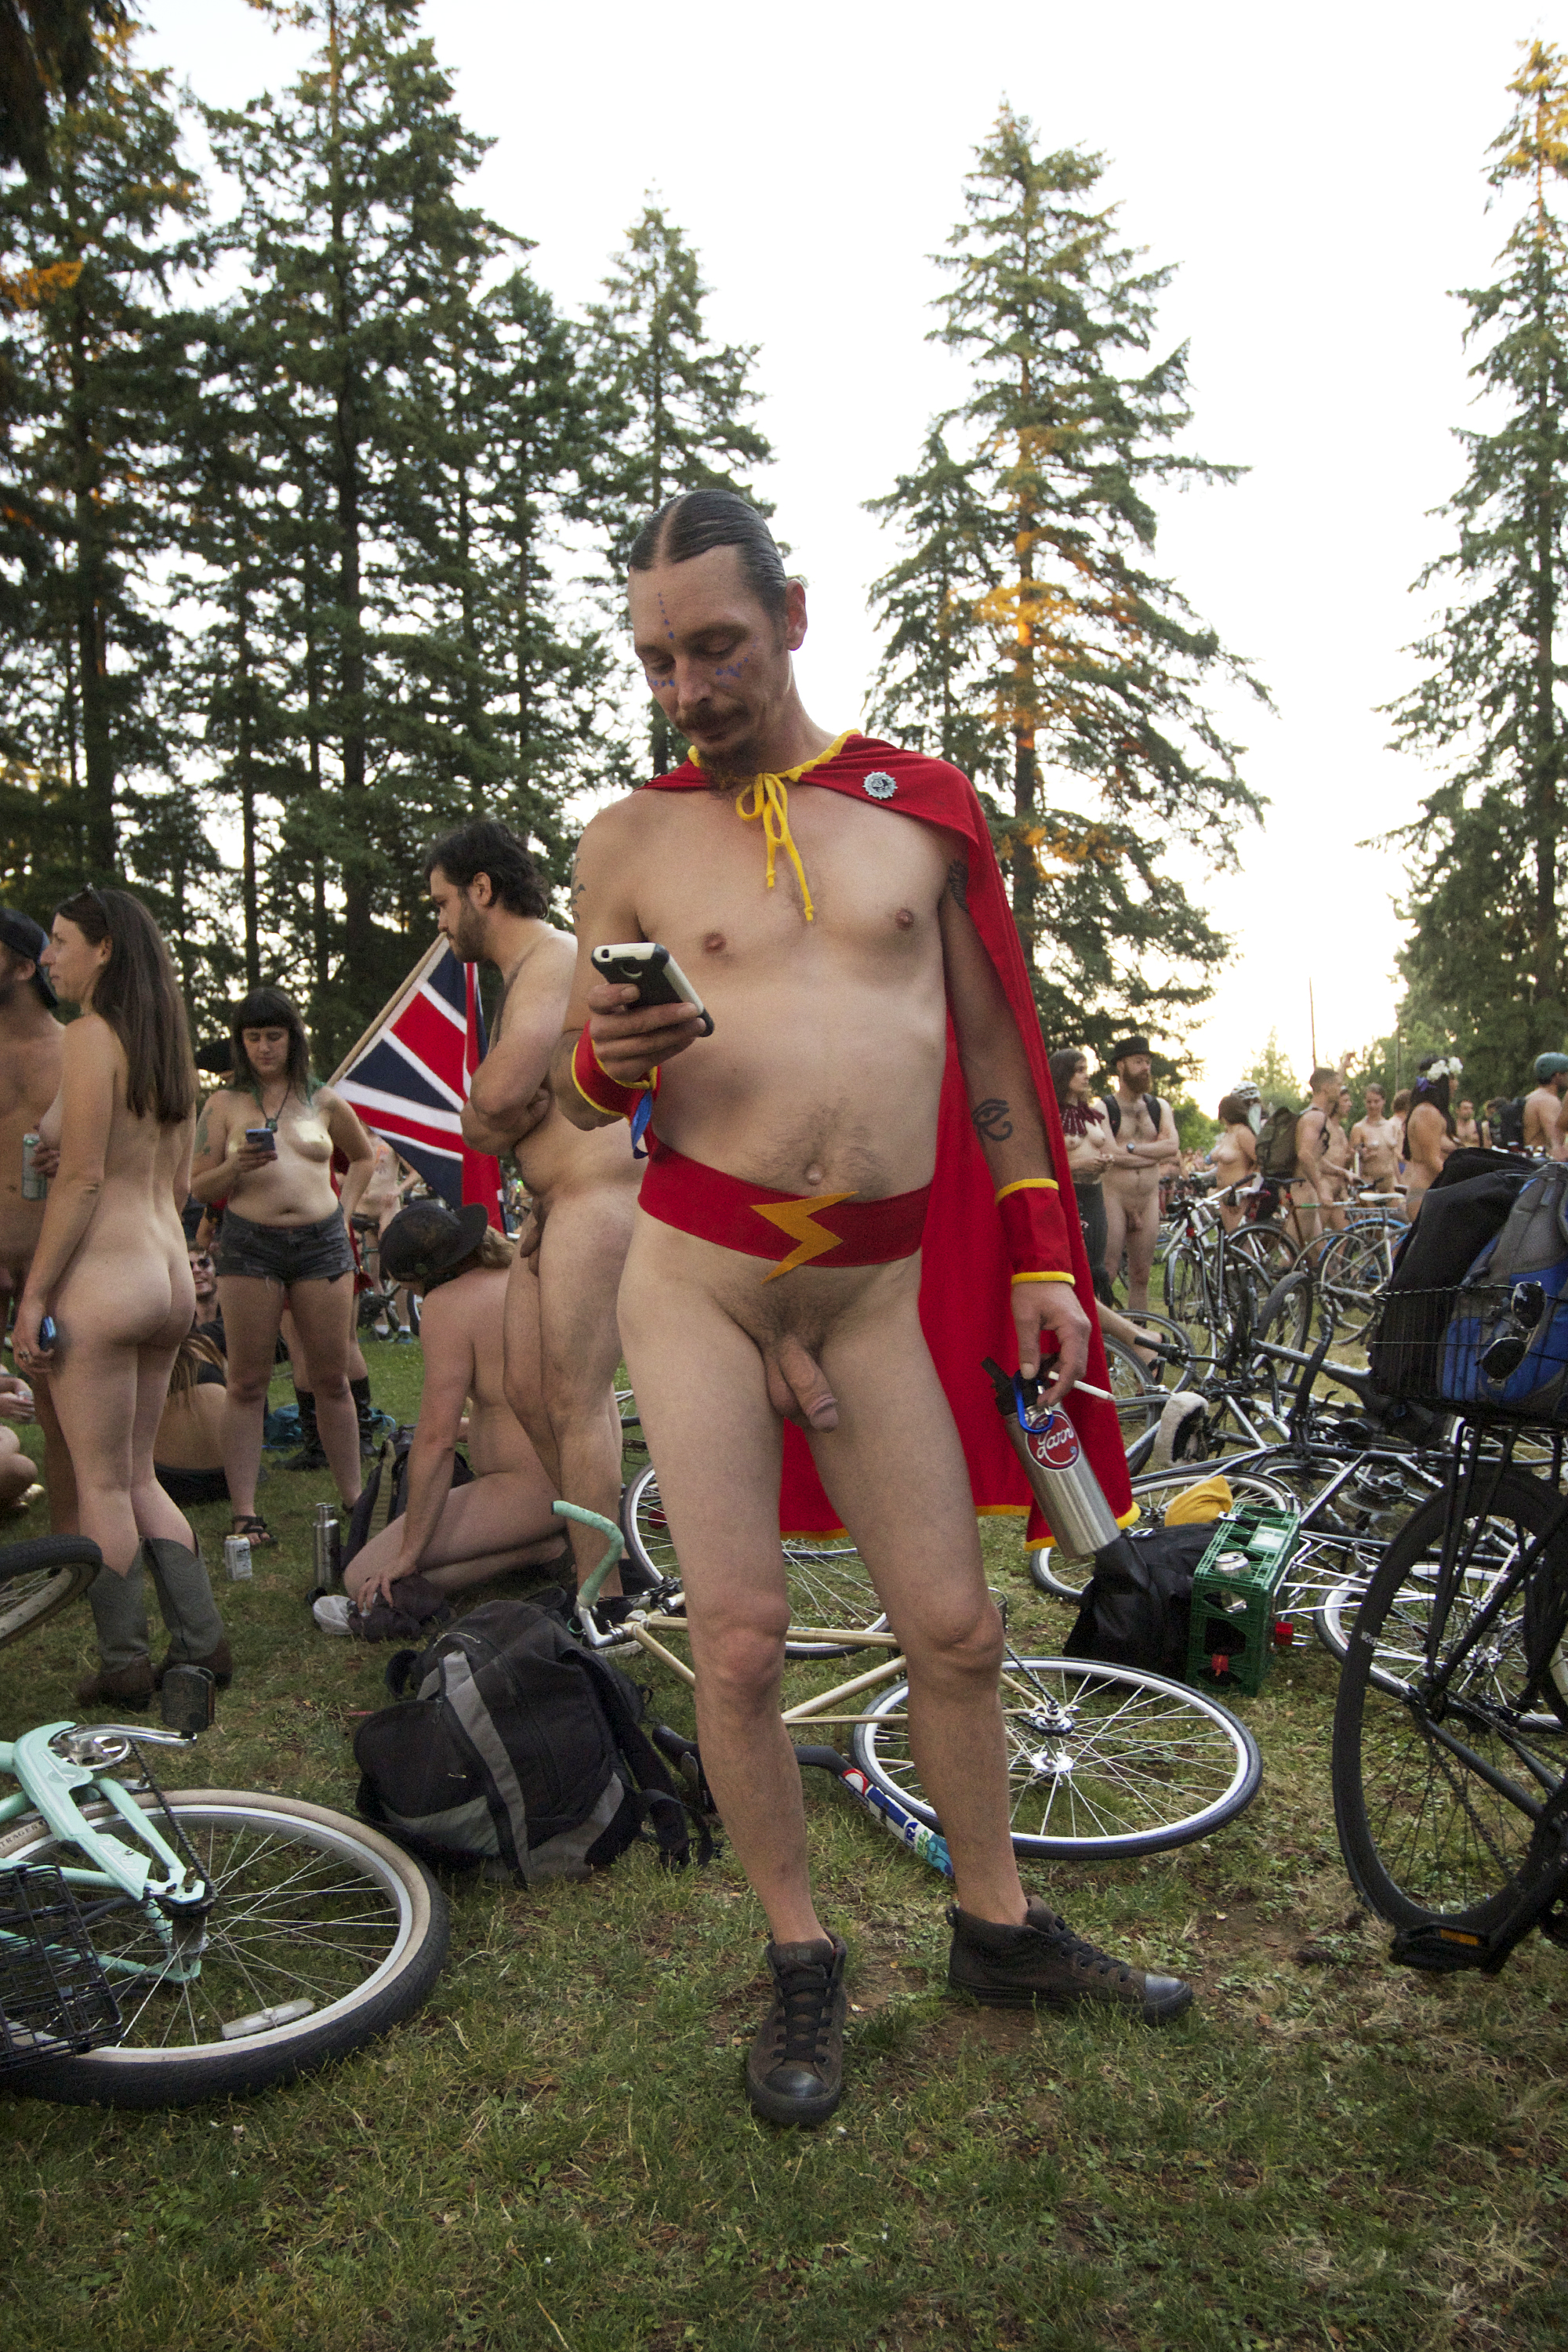 WNBR_WorldNakedBikeRide2016_JeffWalls_DSC4247